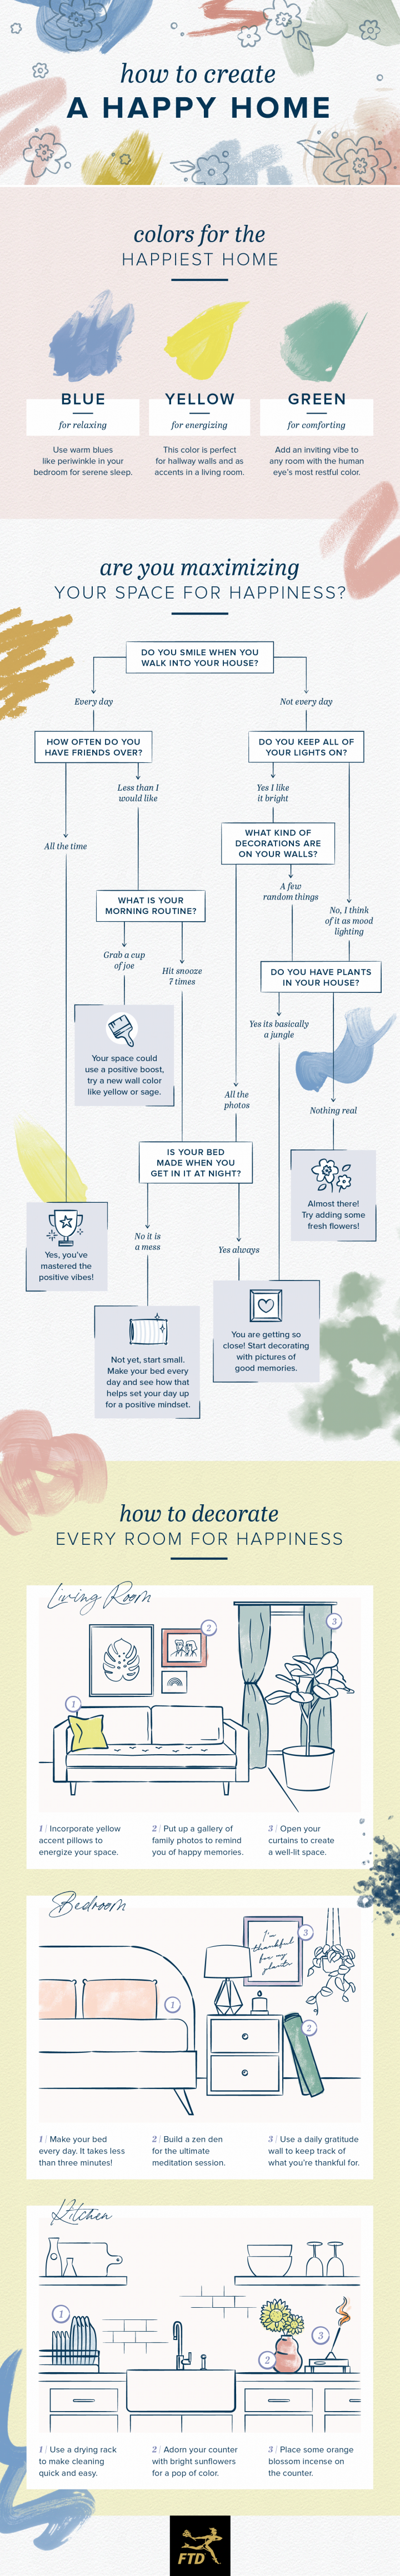 how to have a happy home with flowchart and diagrams.